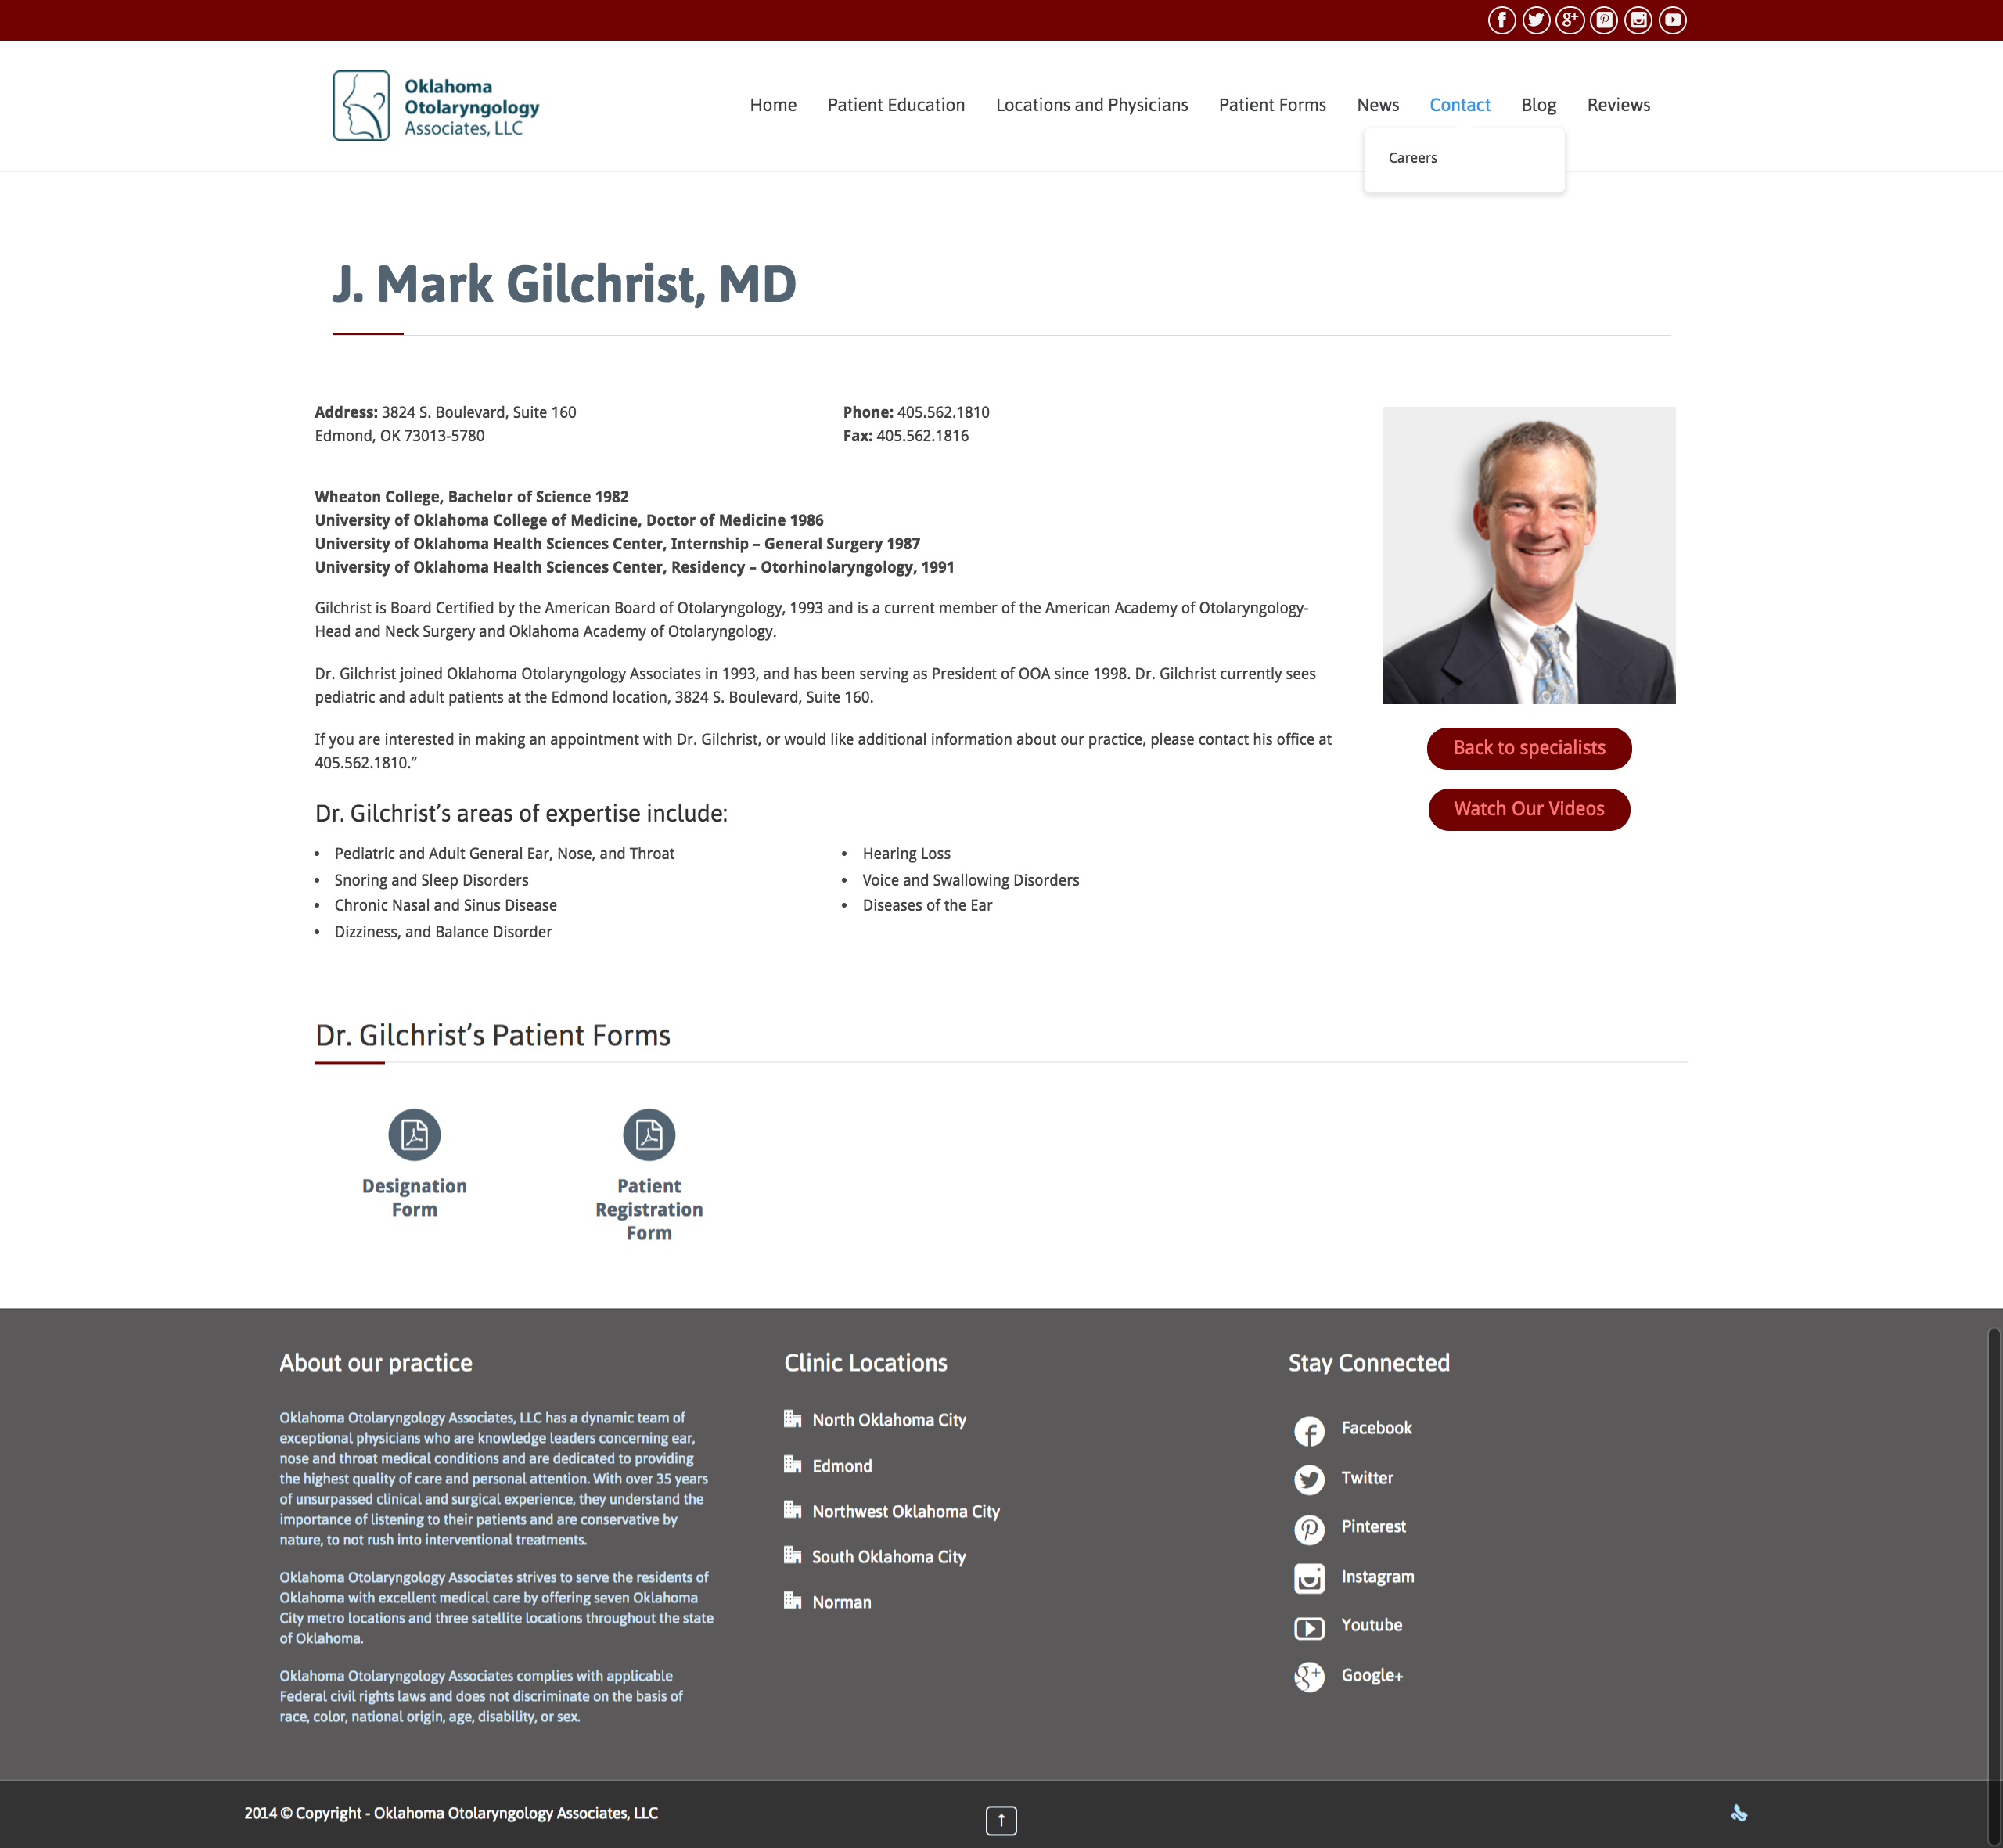 Oklahoma Otolaryngology & Associates